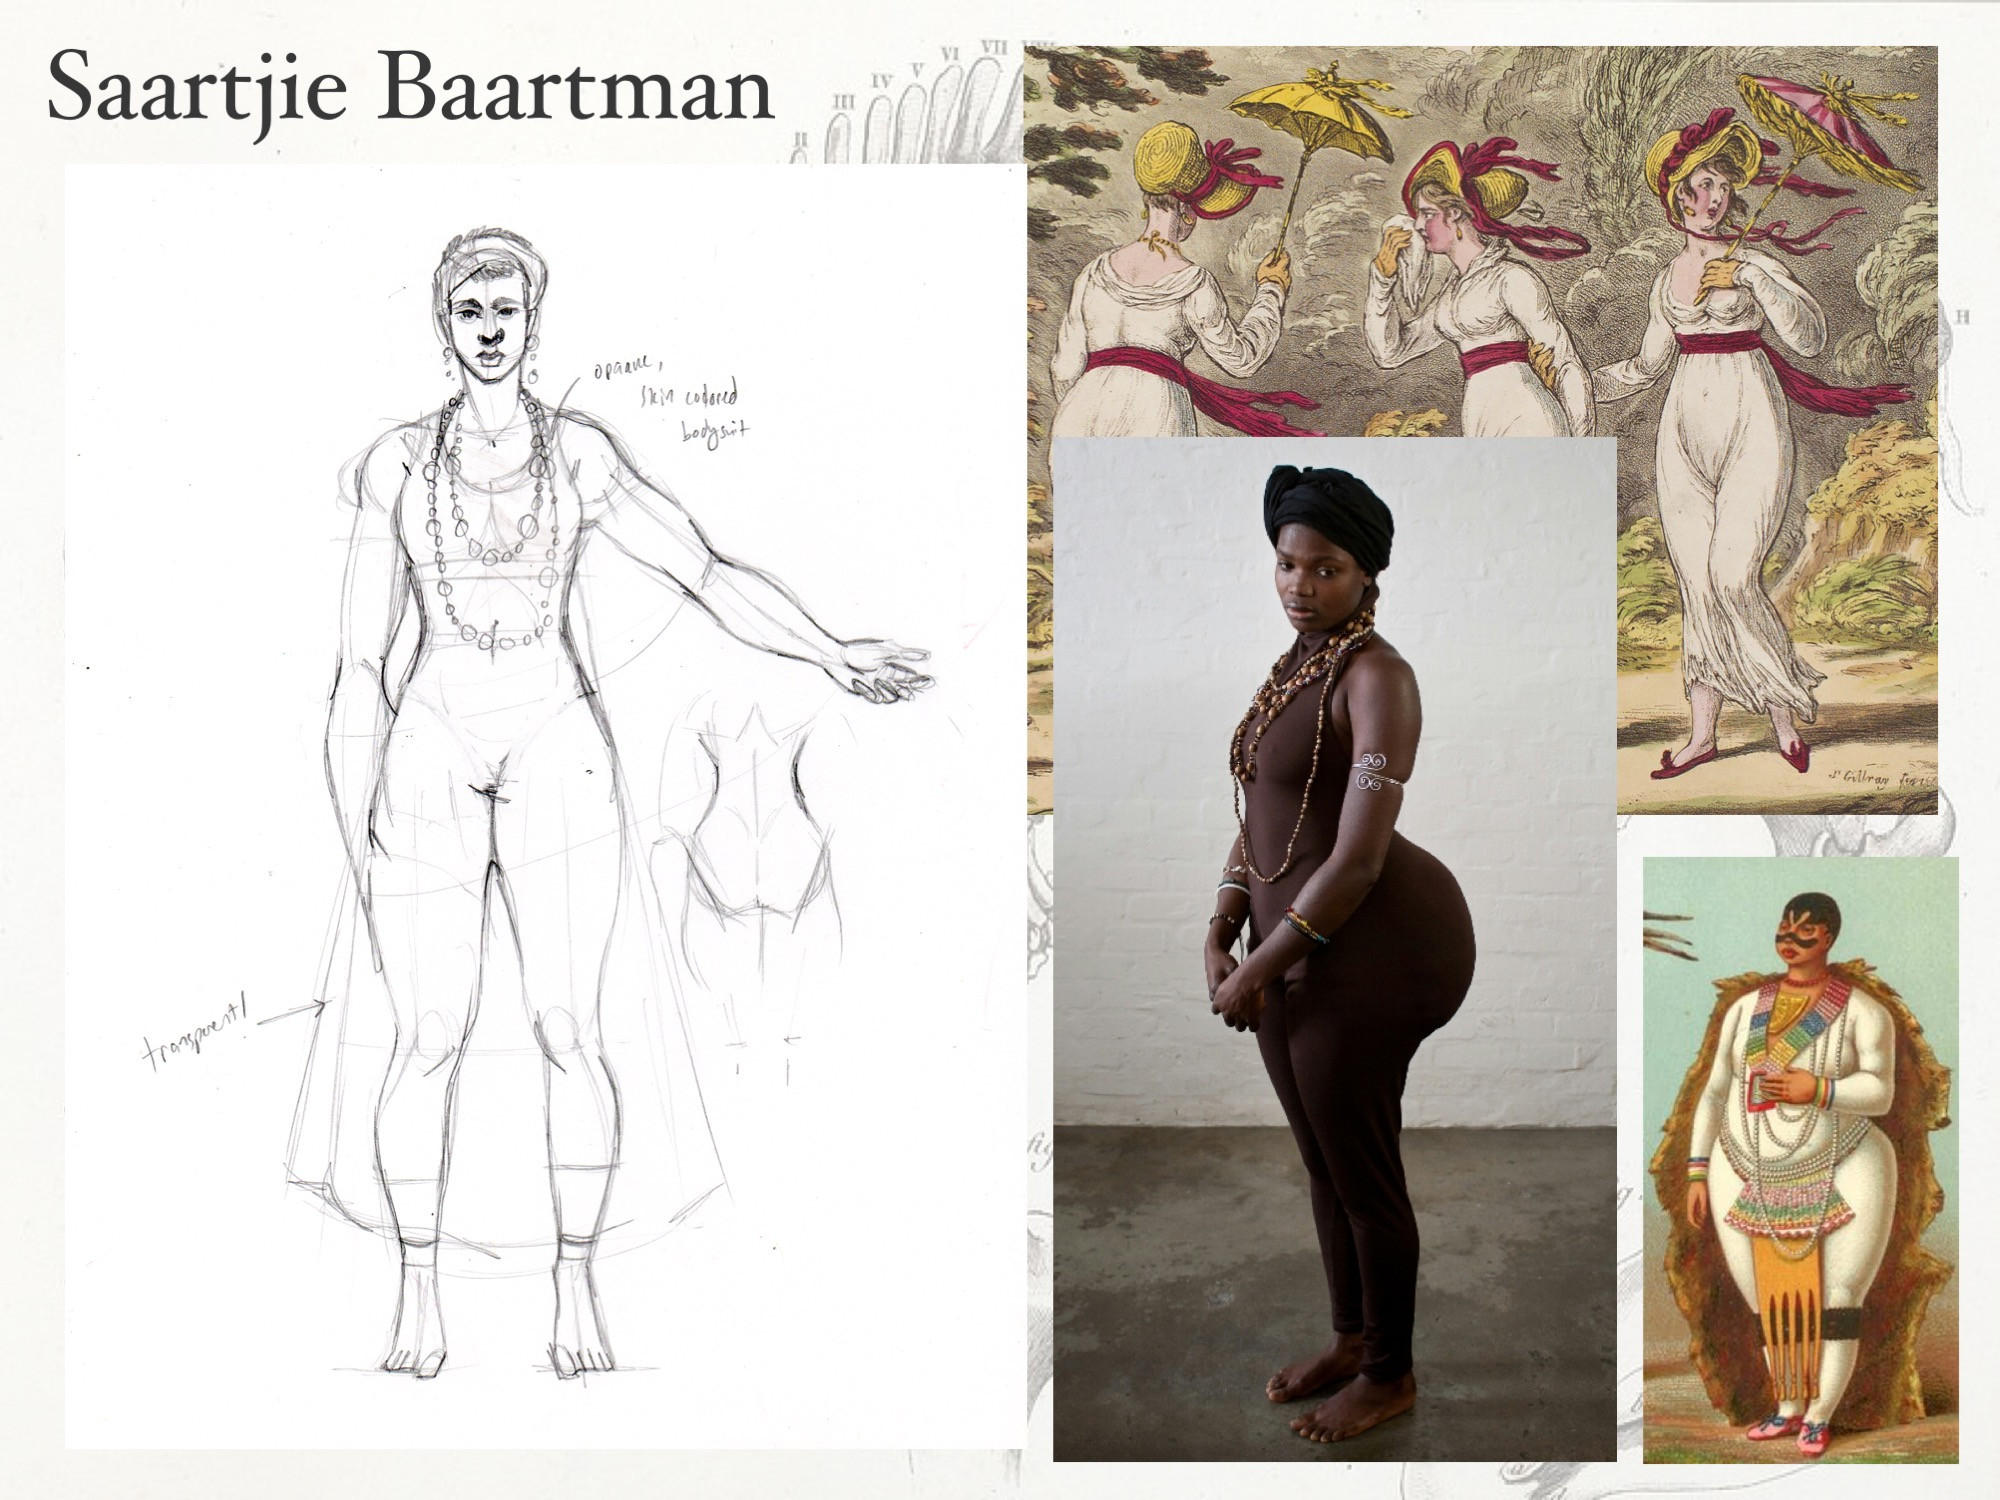 Saartjie Baartmann: reference. There are no known photos of Ms. Baartmann, so what Sara imagines of her is mixed from historical illustrations and how she sees herself Thus, the ghostlike quality.